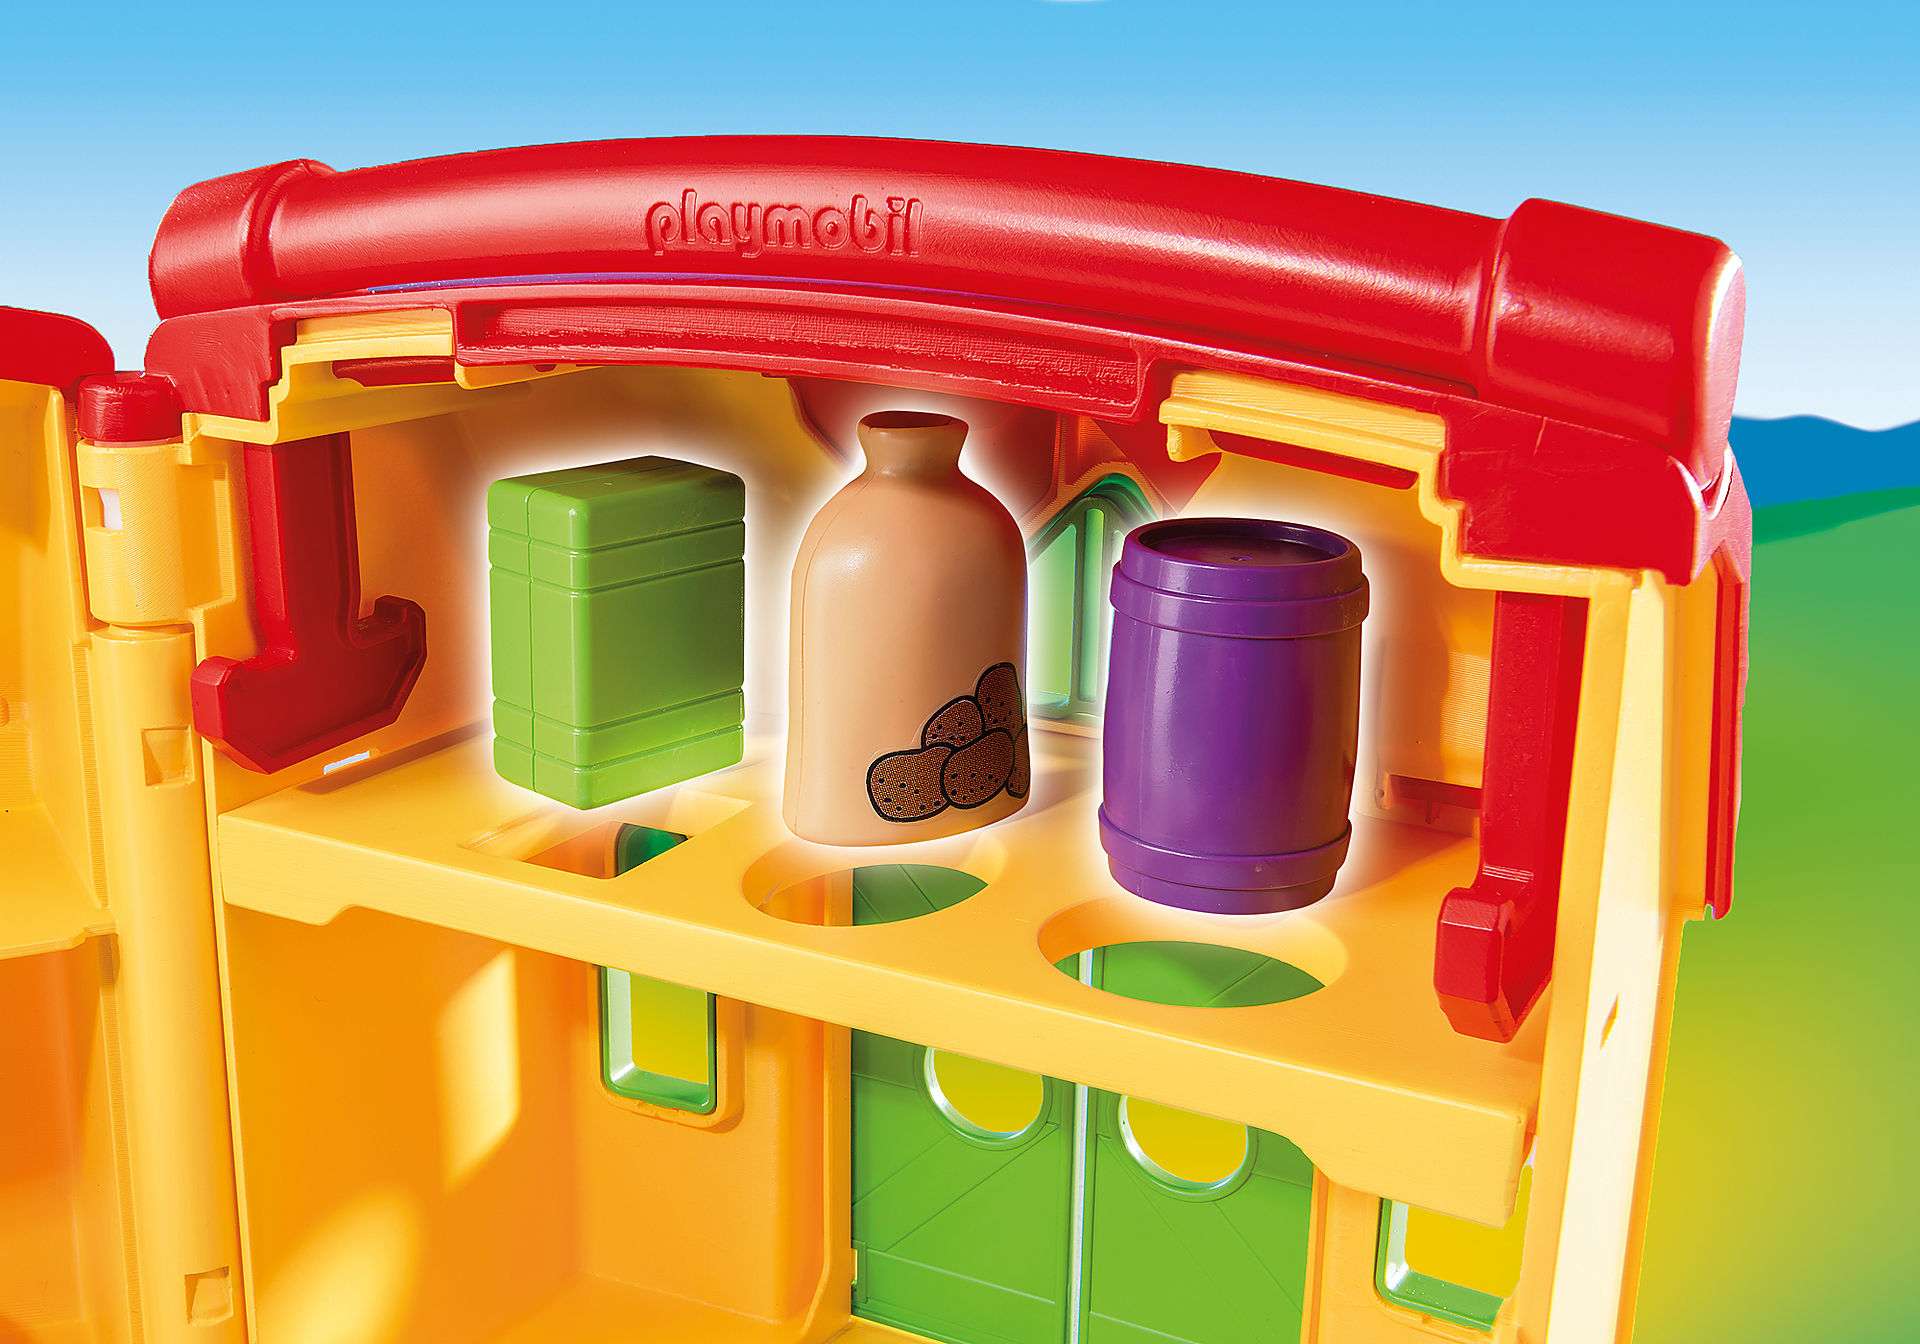 http://media.playmobil.com/i/playmobil/6962_product_extra1/Ferme transportable avec animaux